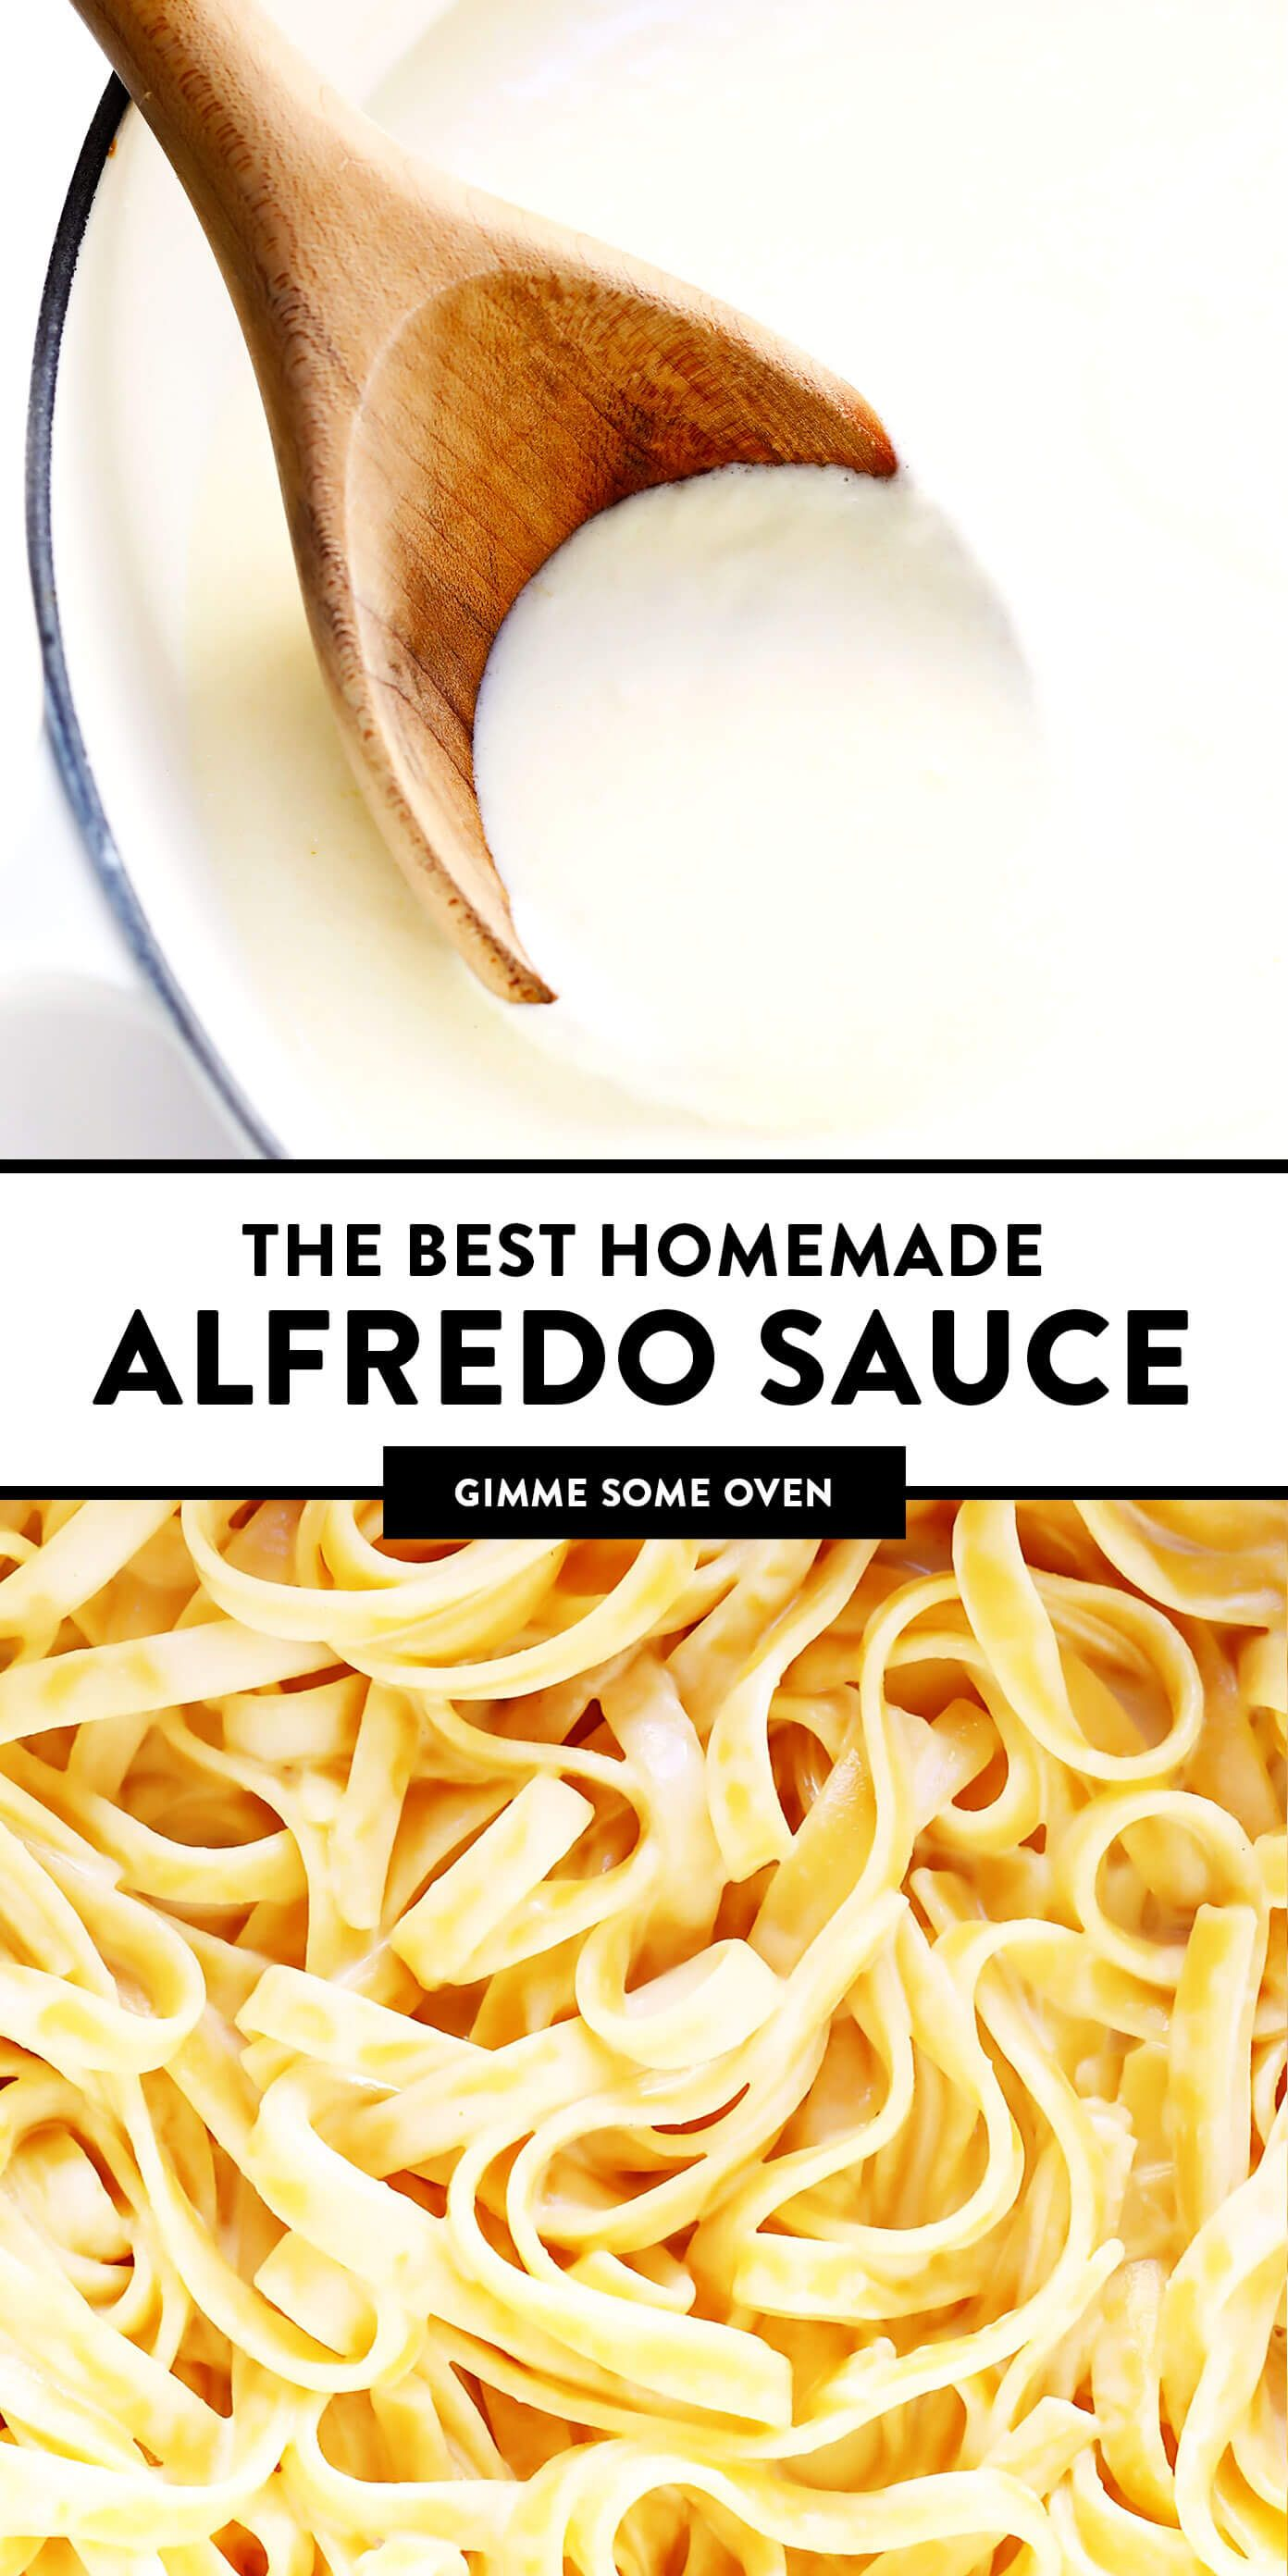 This homemade Alfredo sauce recipe is easy to make in 15 minutes and full of the best creamy, cheesy, garlicky flavors. Serve it with fettuccine pasta, chicken, shrimp, pizza, baked ziti, lasagna or whatever sounds good! | gimmesomeoven.com #alfredo #sauce #cream #cheese #italian #pasta #dinner #easy #vegetarian #mealprep